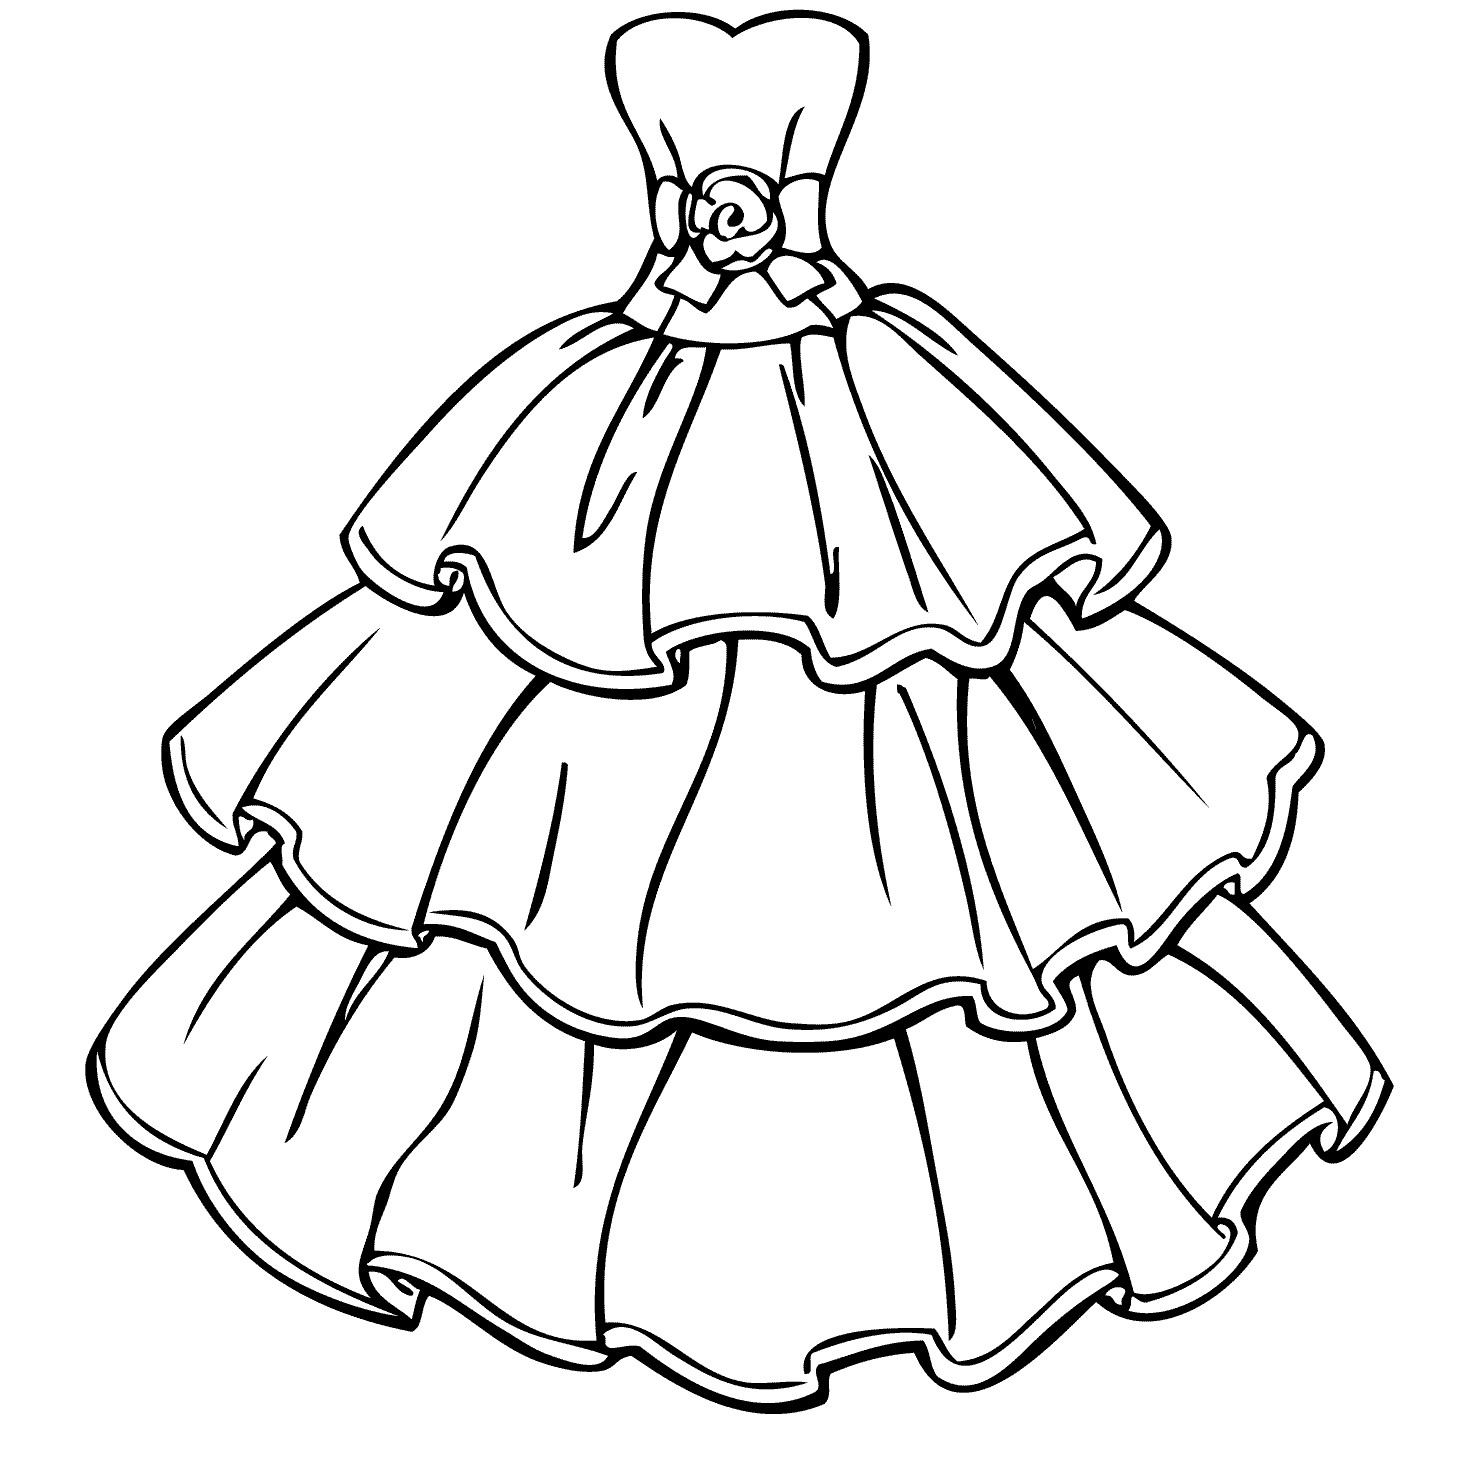 dresses coloring pages dress coloring pages to download and print for free pages dresses coloring